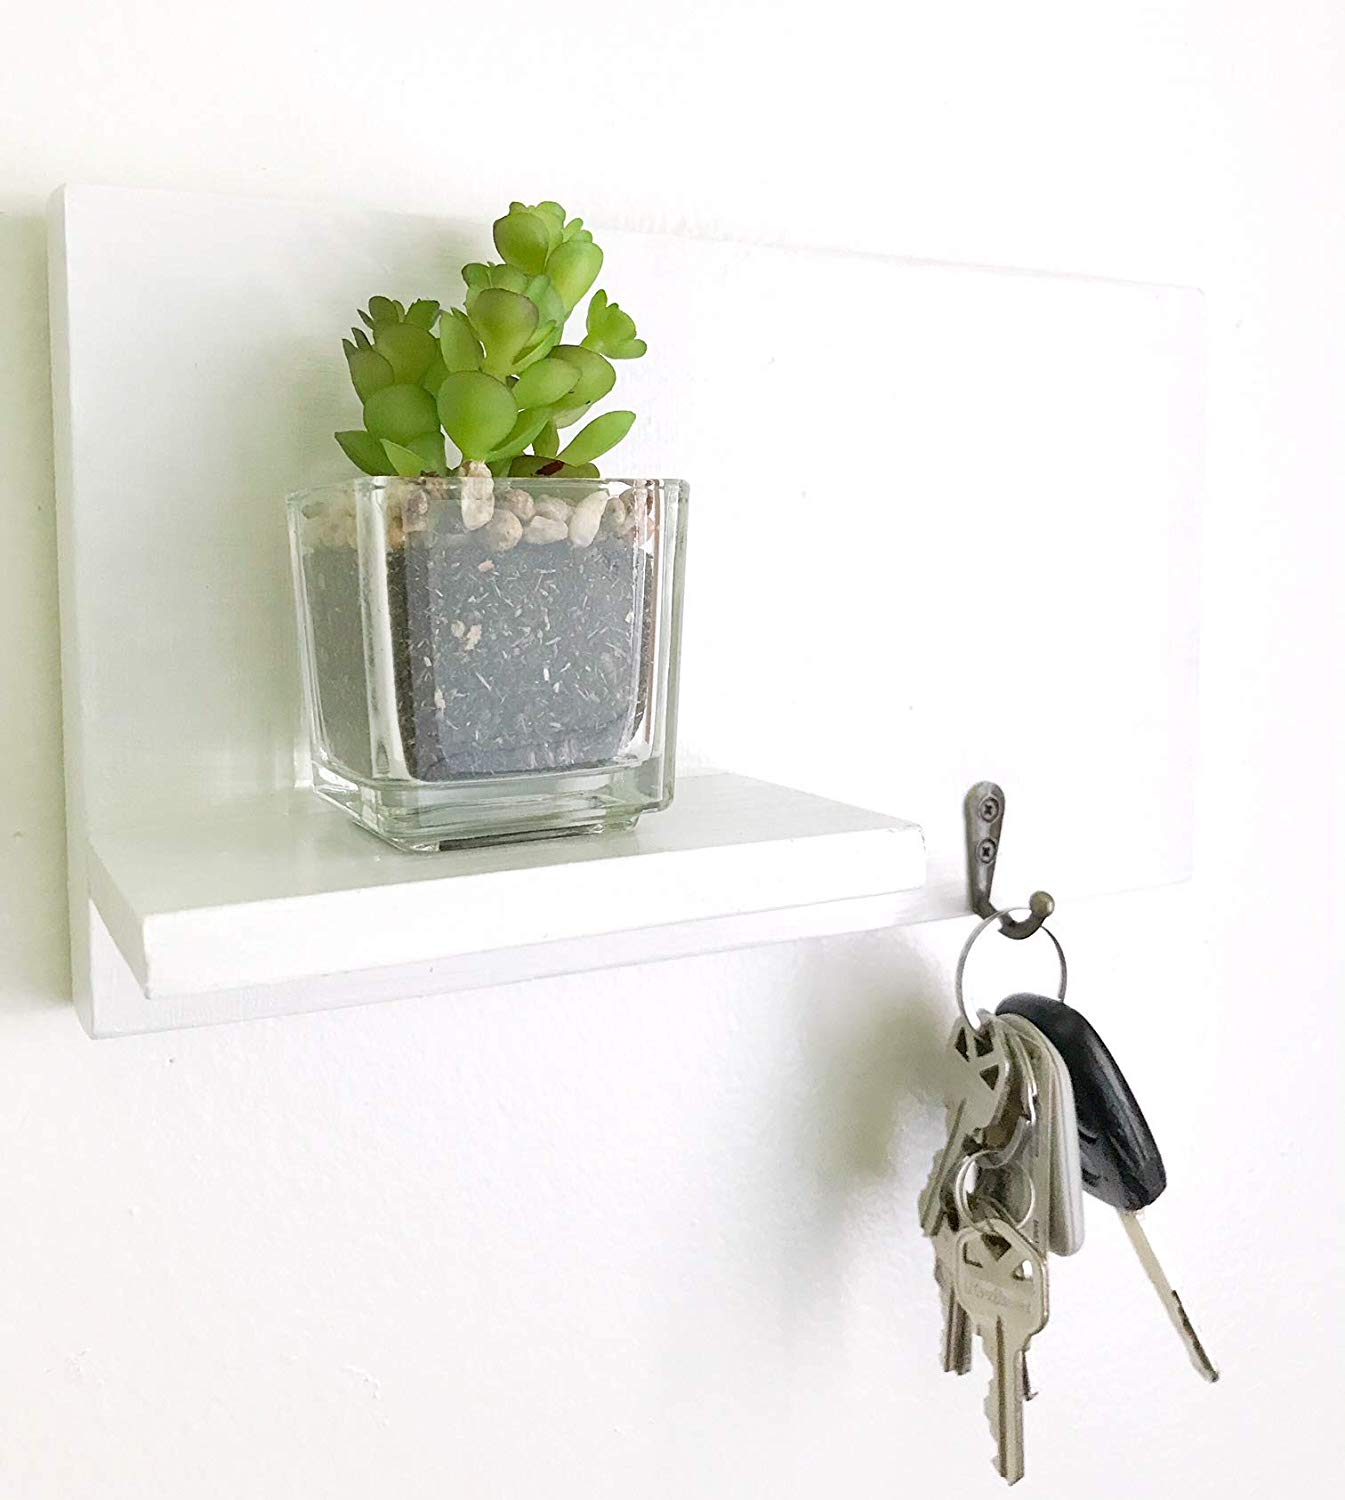 Entry Way Shelf, White Shelf, Wooden Shelf, Floating Shelf, Key Hanger, Key Holder, White Key Holder Shelf, Shelf With Hooks, Entry Way Organizer, Coat Rack, White Shelves